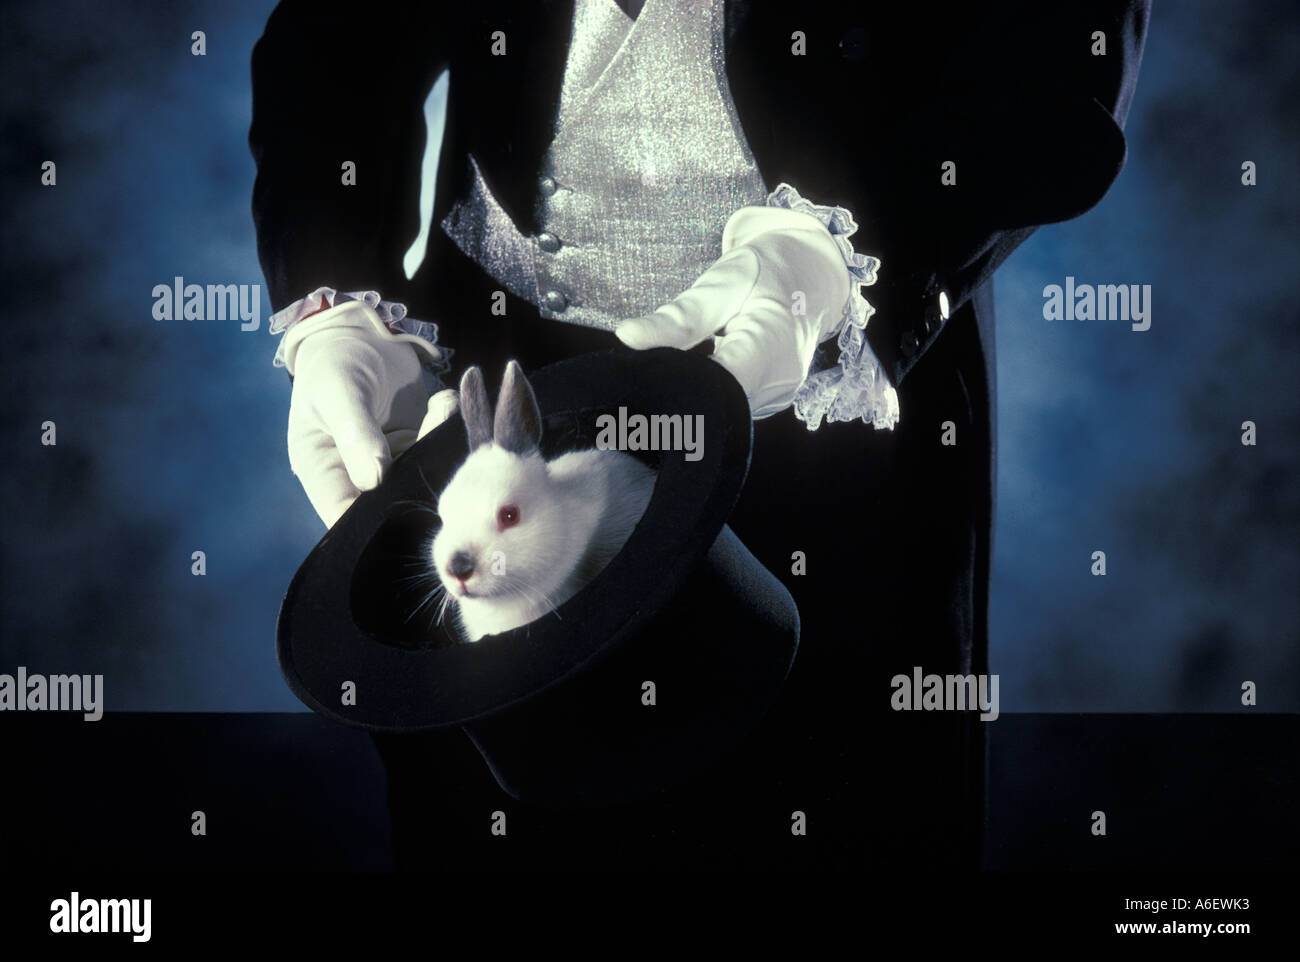 Magician pulls rabbit from top hat - Stock Image